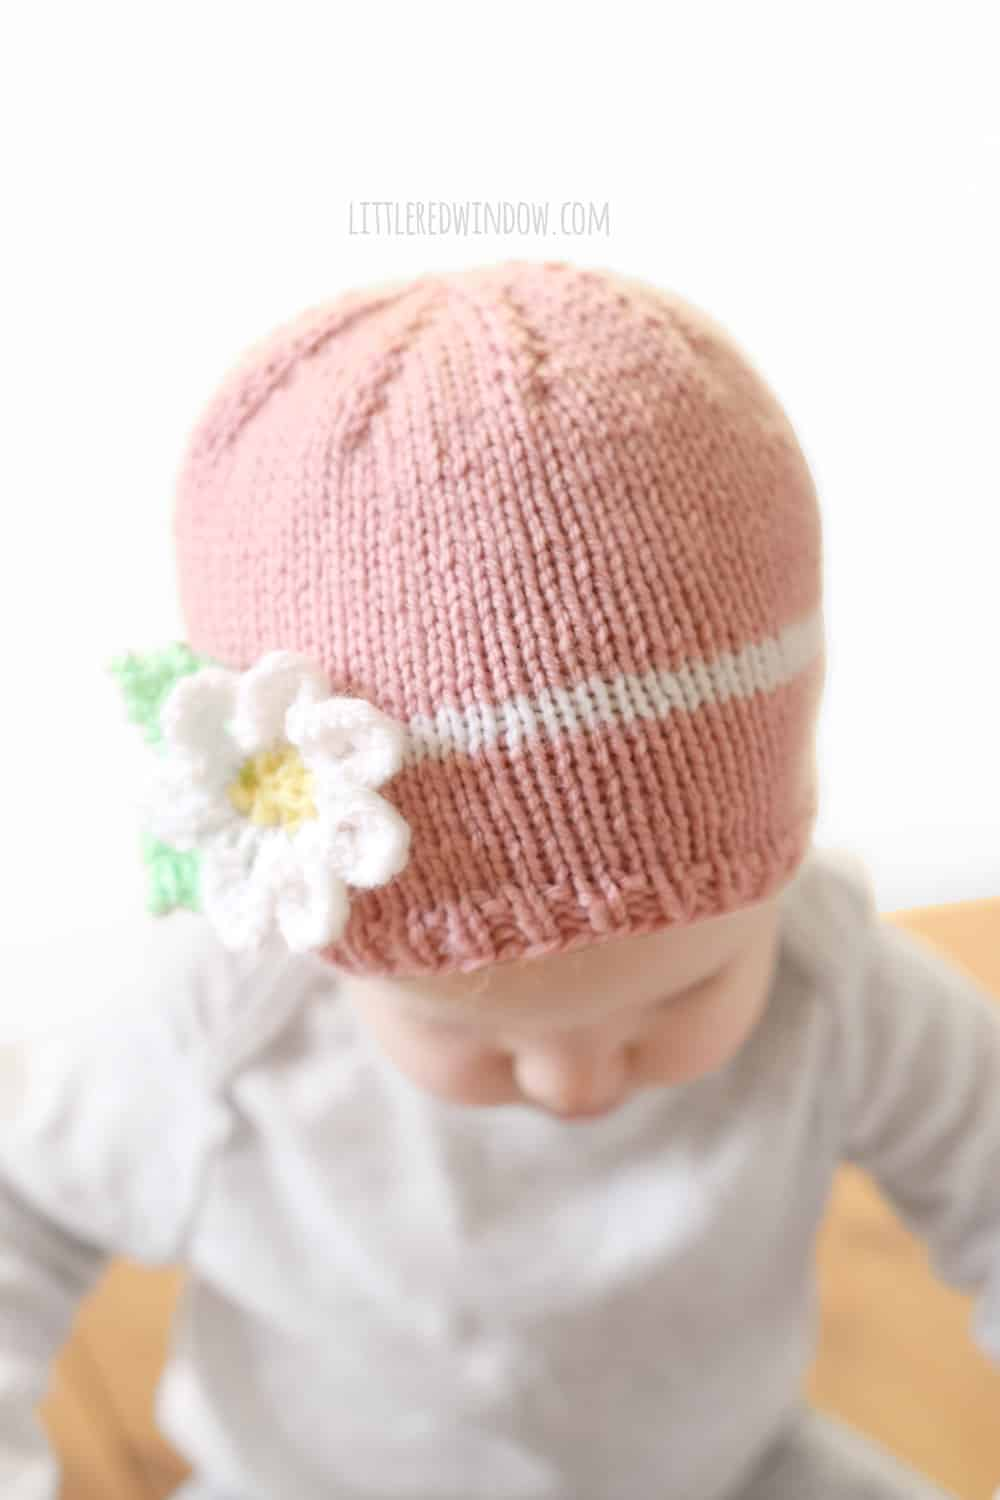 Spring Daisy Hat Knitting Pattern for newborns, babies and toddlers! | littleredwindow.com